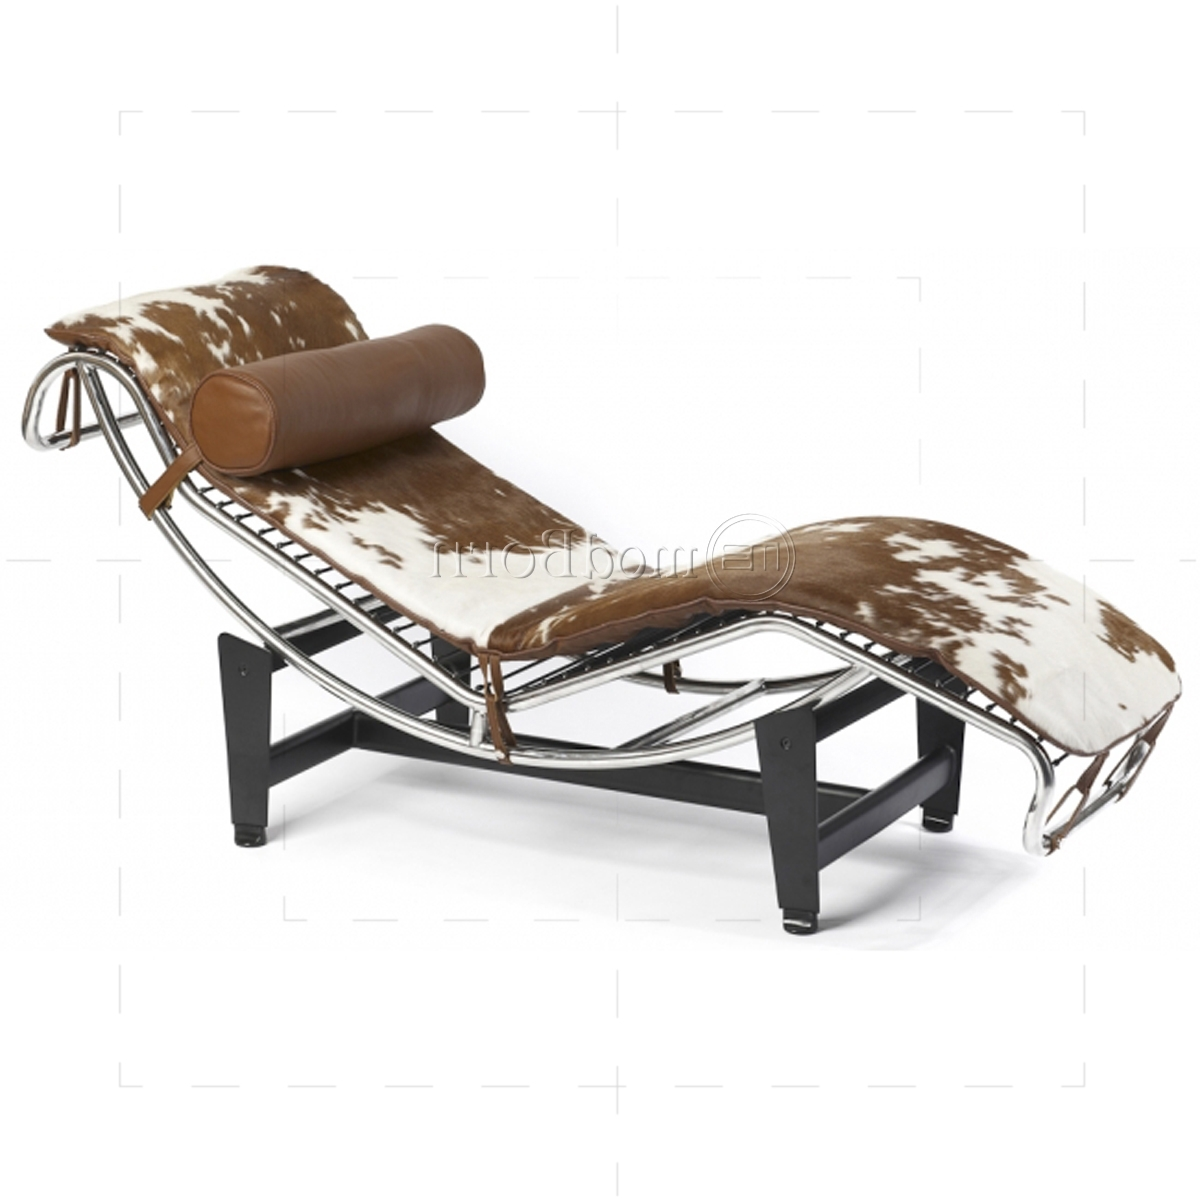 Widely Used Brown Chaise Lounge Chair By Le Corbusier With Regard To Le Corbusier Style Lc4 Chaise Longue Pony Leather – Replica (View 6 of 15)